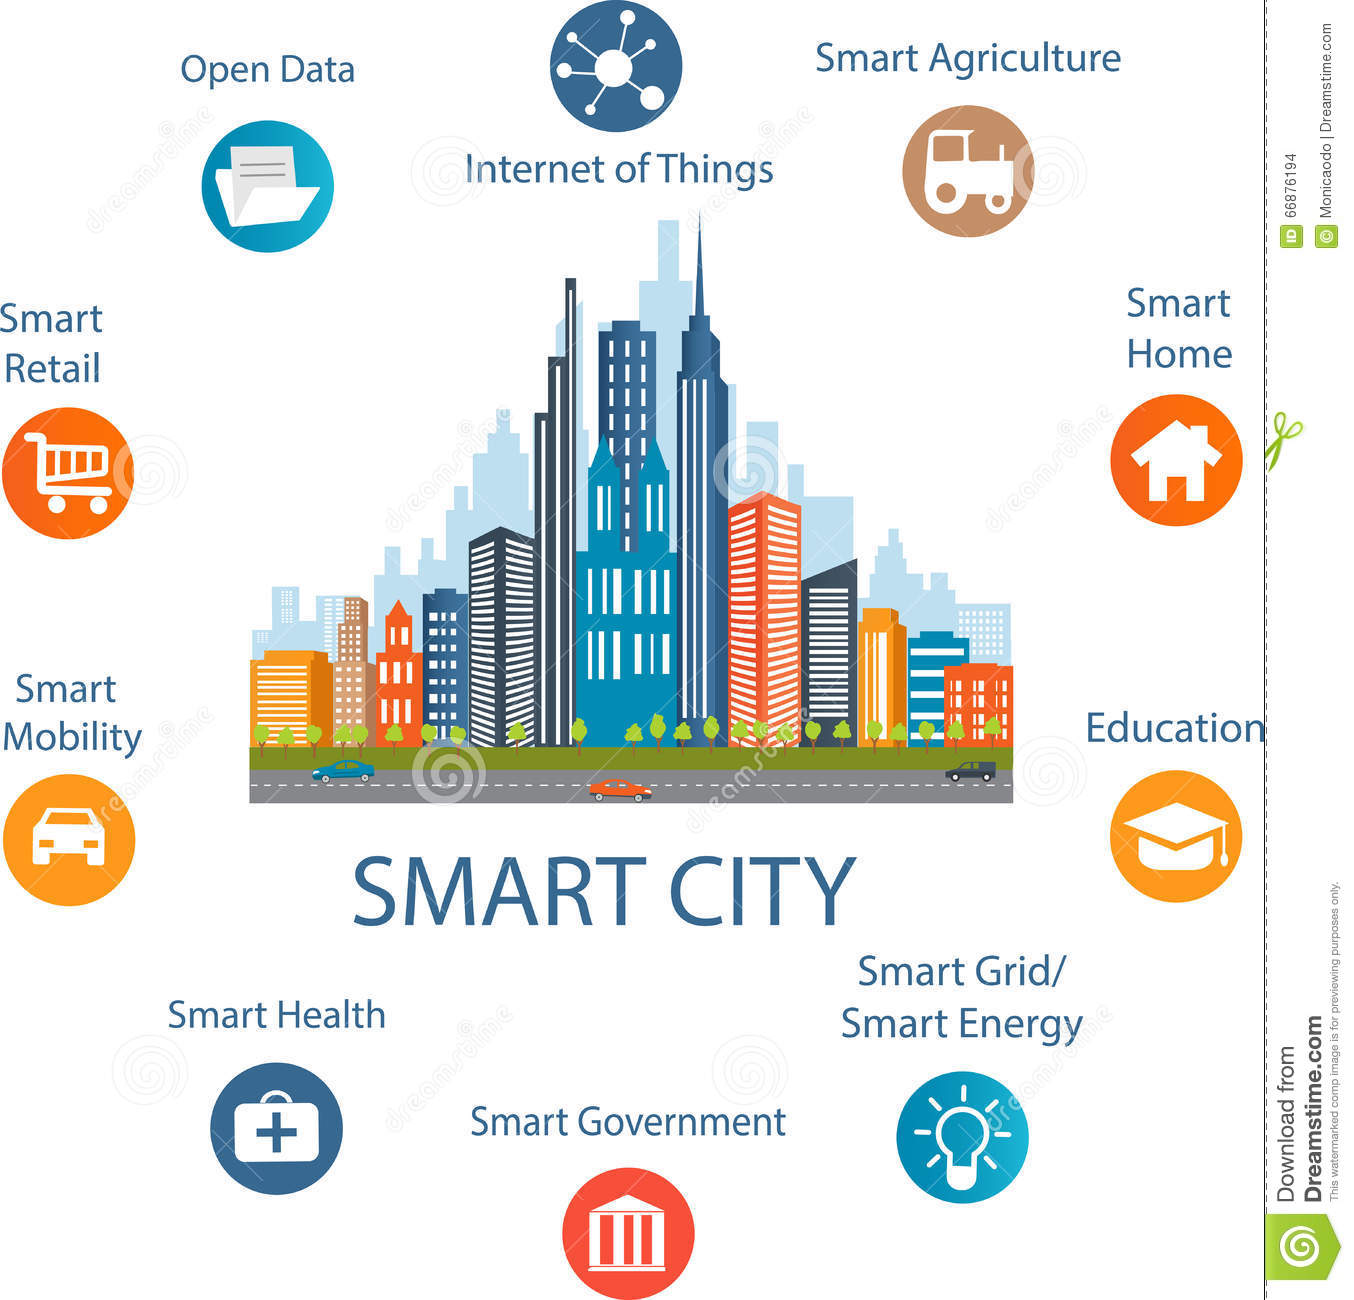 Silicon Village Cyient And Kii Corp Partner For Smart City